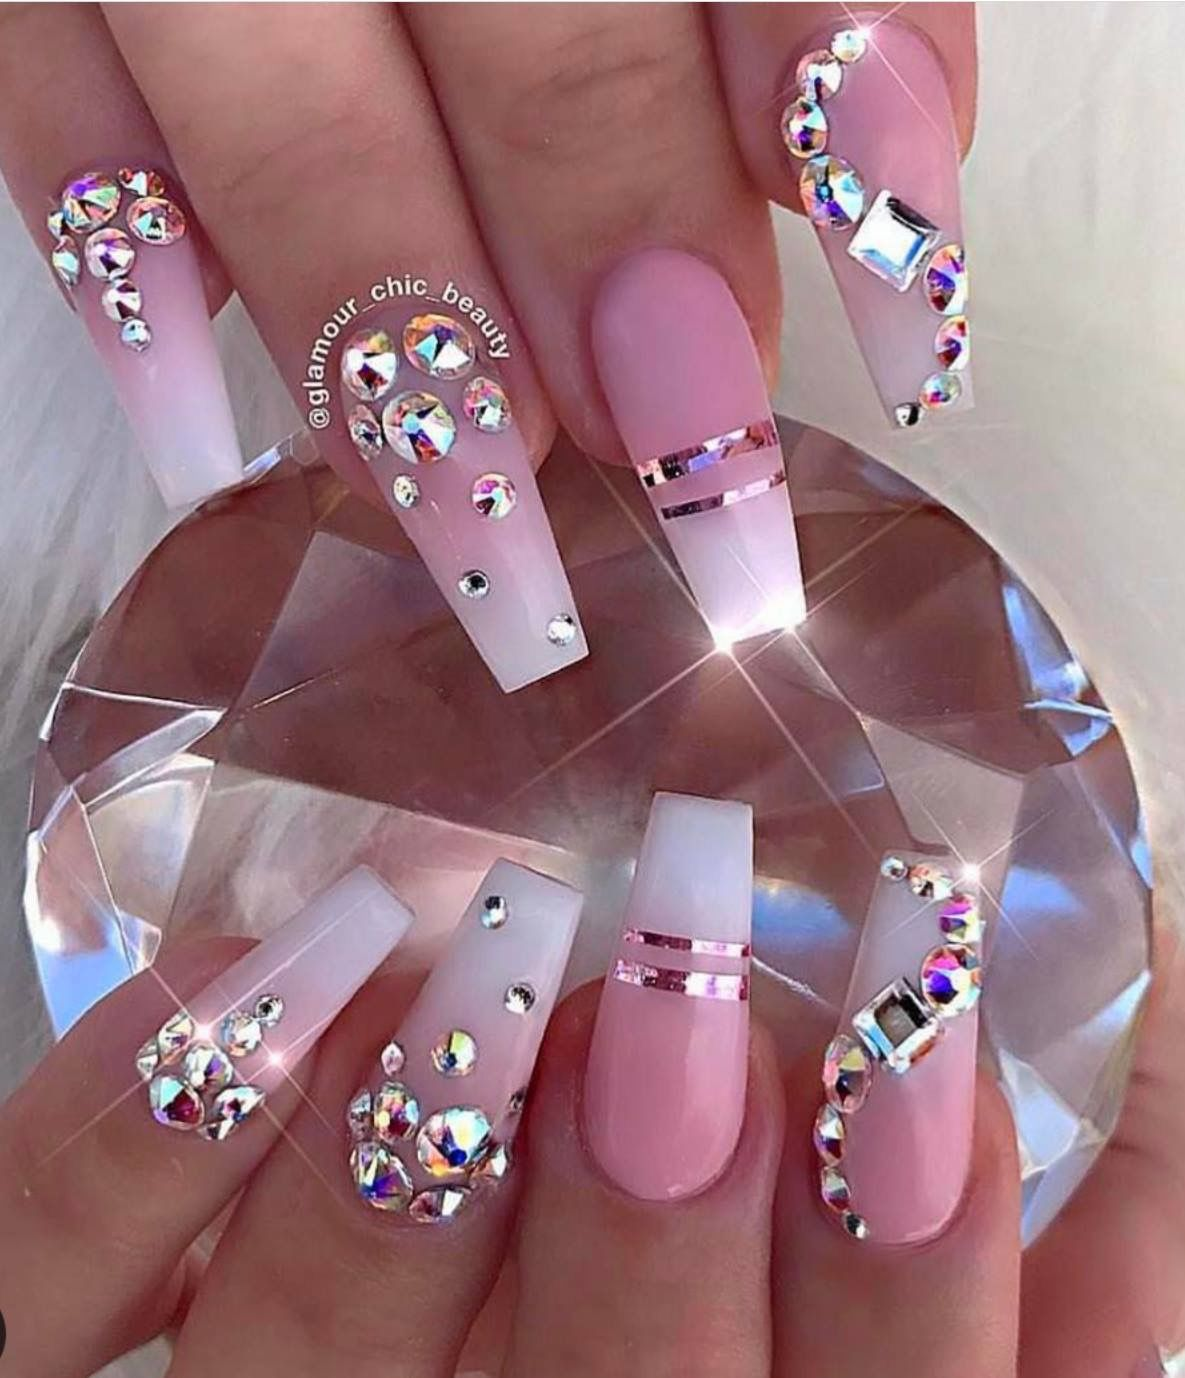 Pin by Queen C on NAILS | Pinterest | Nail nail, Designer nails and ...